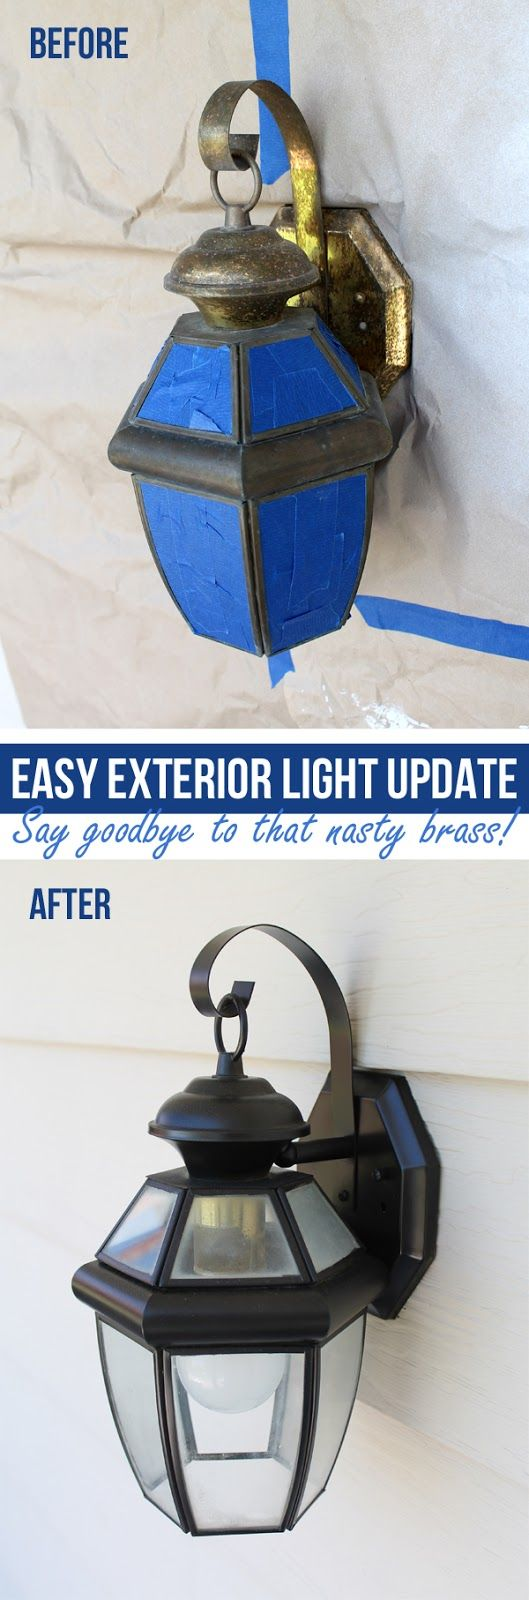 What a great before and after! For the cost of two cans of spray paint, I have four new exterior lights!